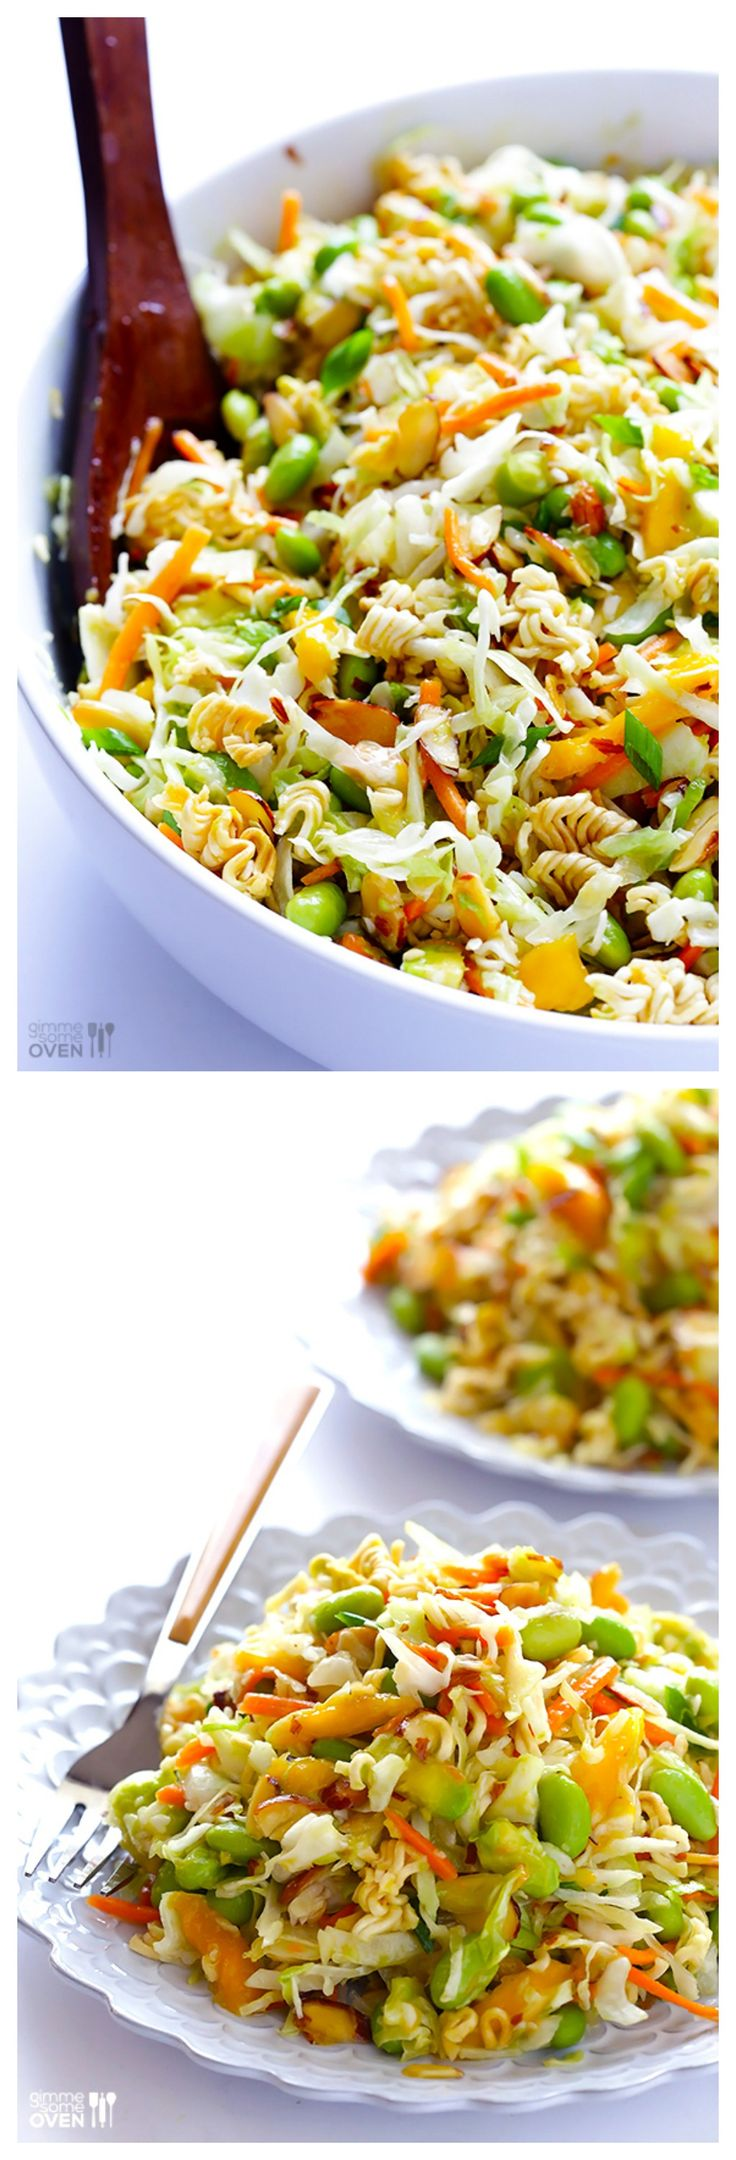 Crunchy Asian Ramen Noodle Salad -~ ready to go in 10 min, and modernized with fresher ingredients!